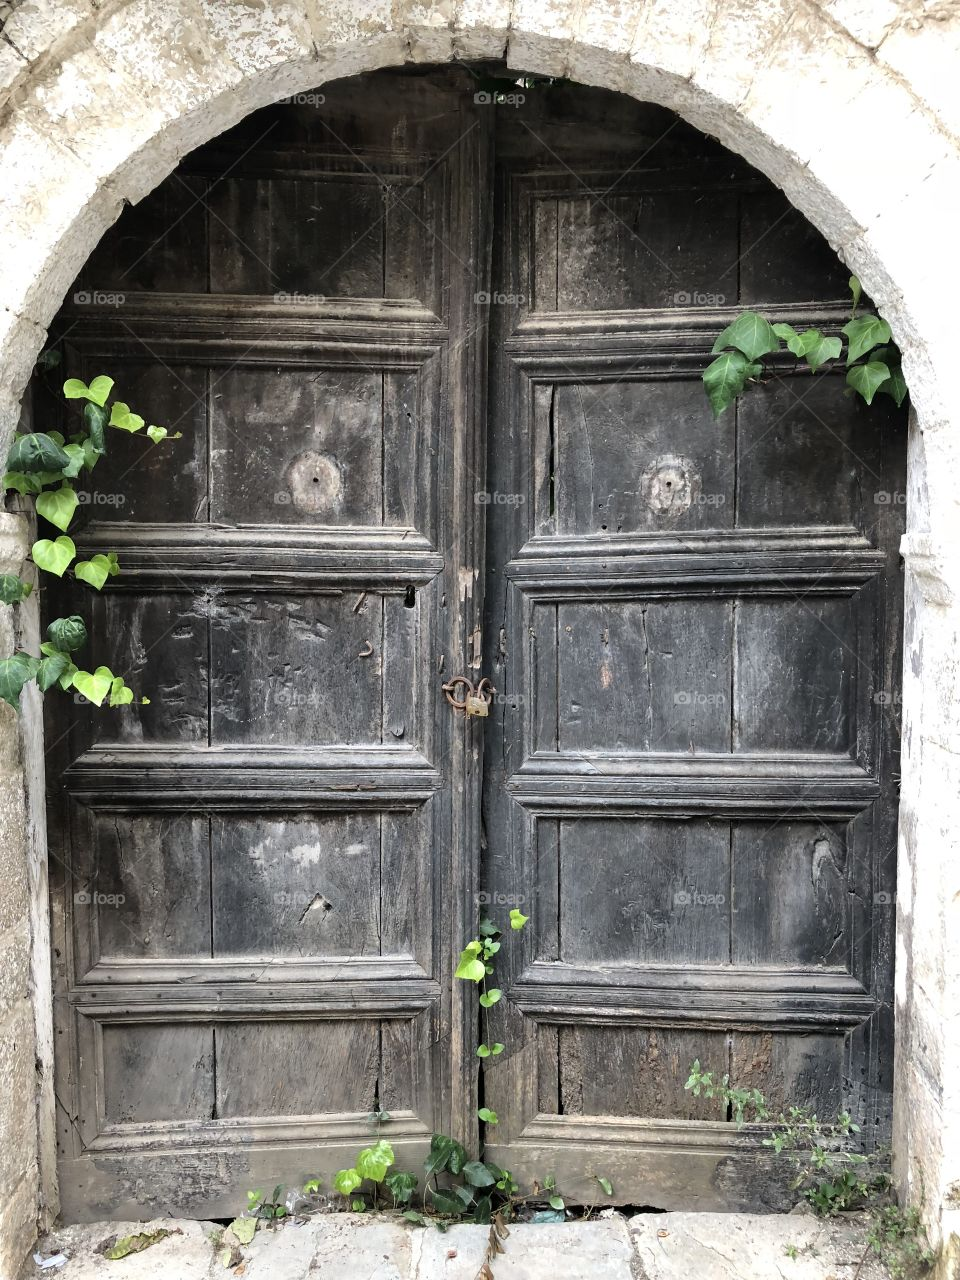 An old door in an narrow alley of the old town Berat in Albania.